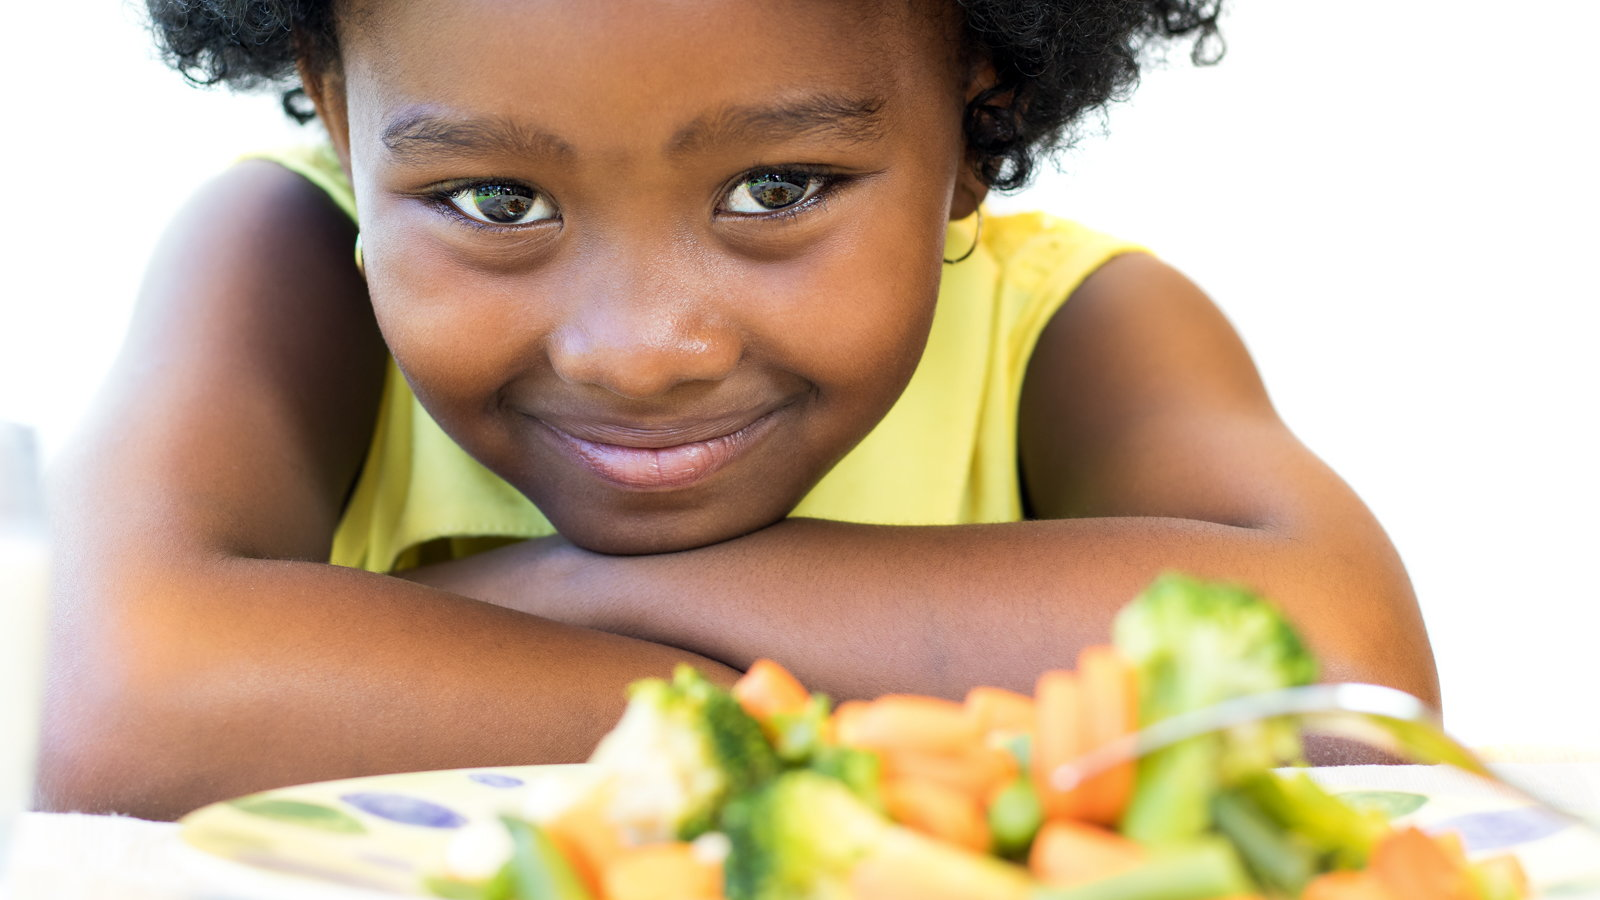 little girl with plate of vegetables